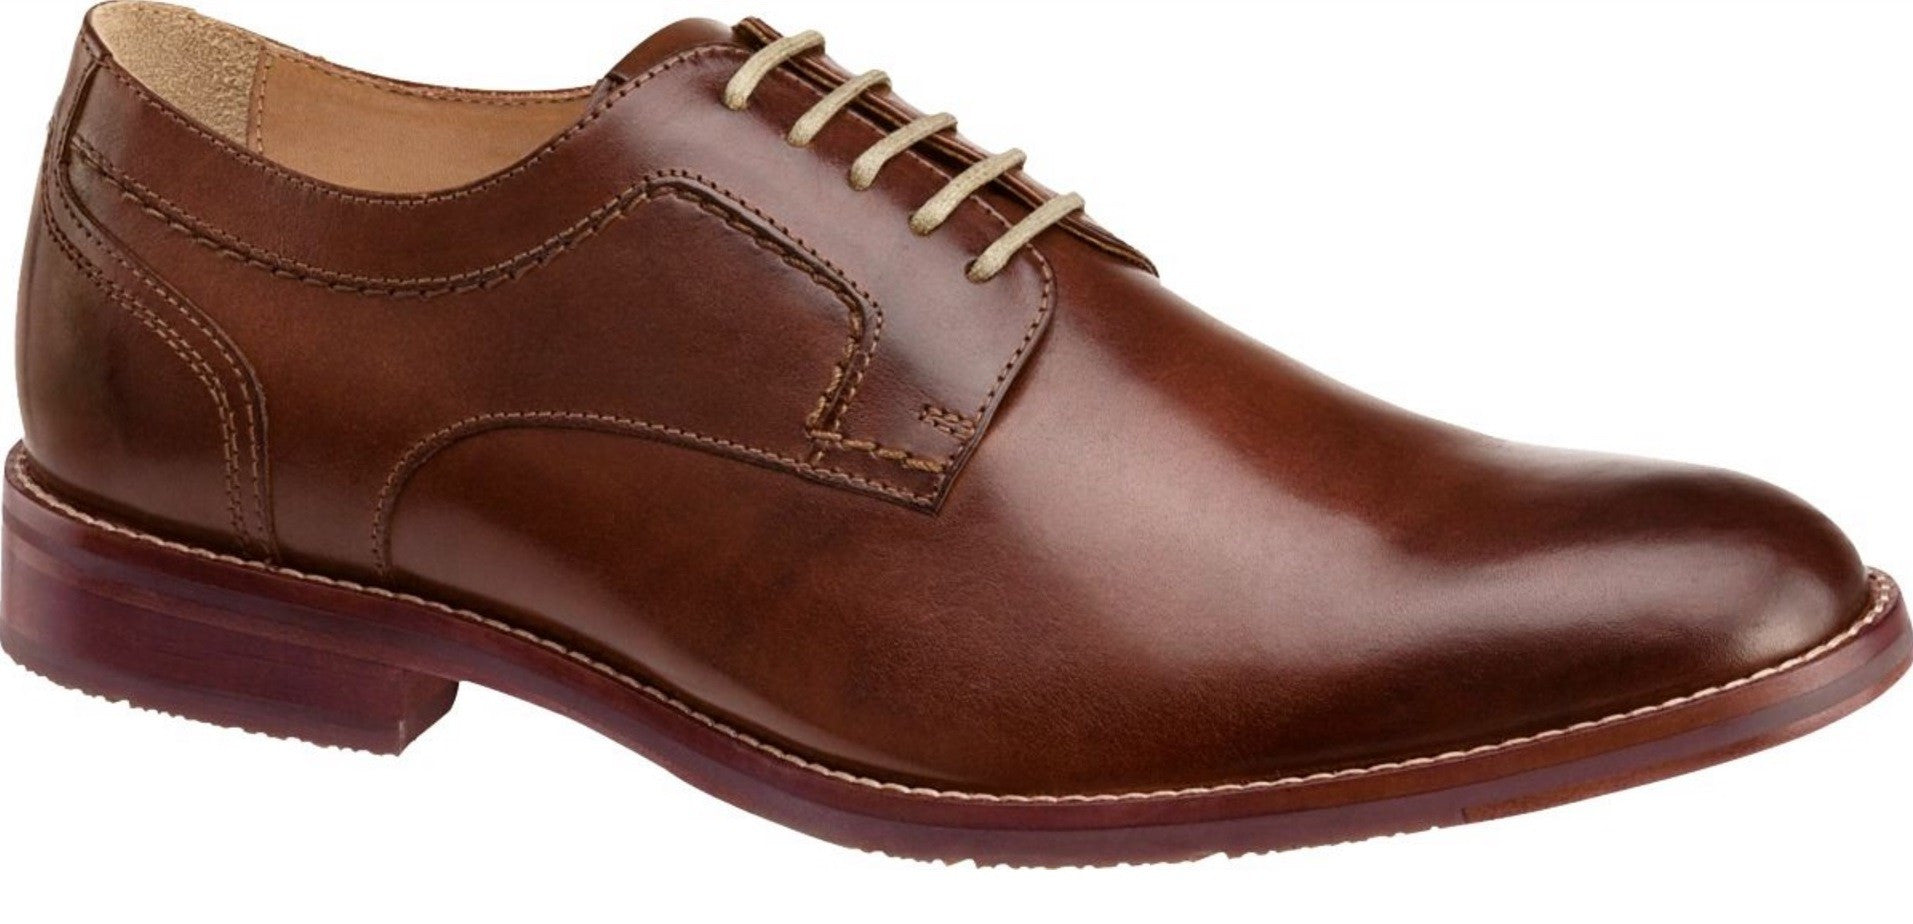 Johnston & Murphy GARNER PLAIN TOE 20-1823 Acajou Semelle Amovible Removable Insole